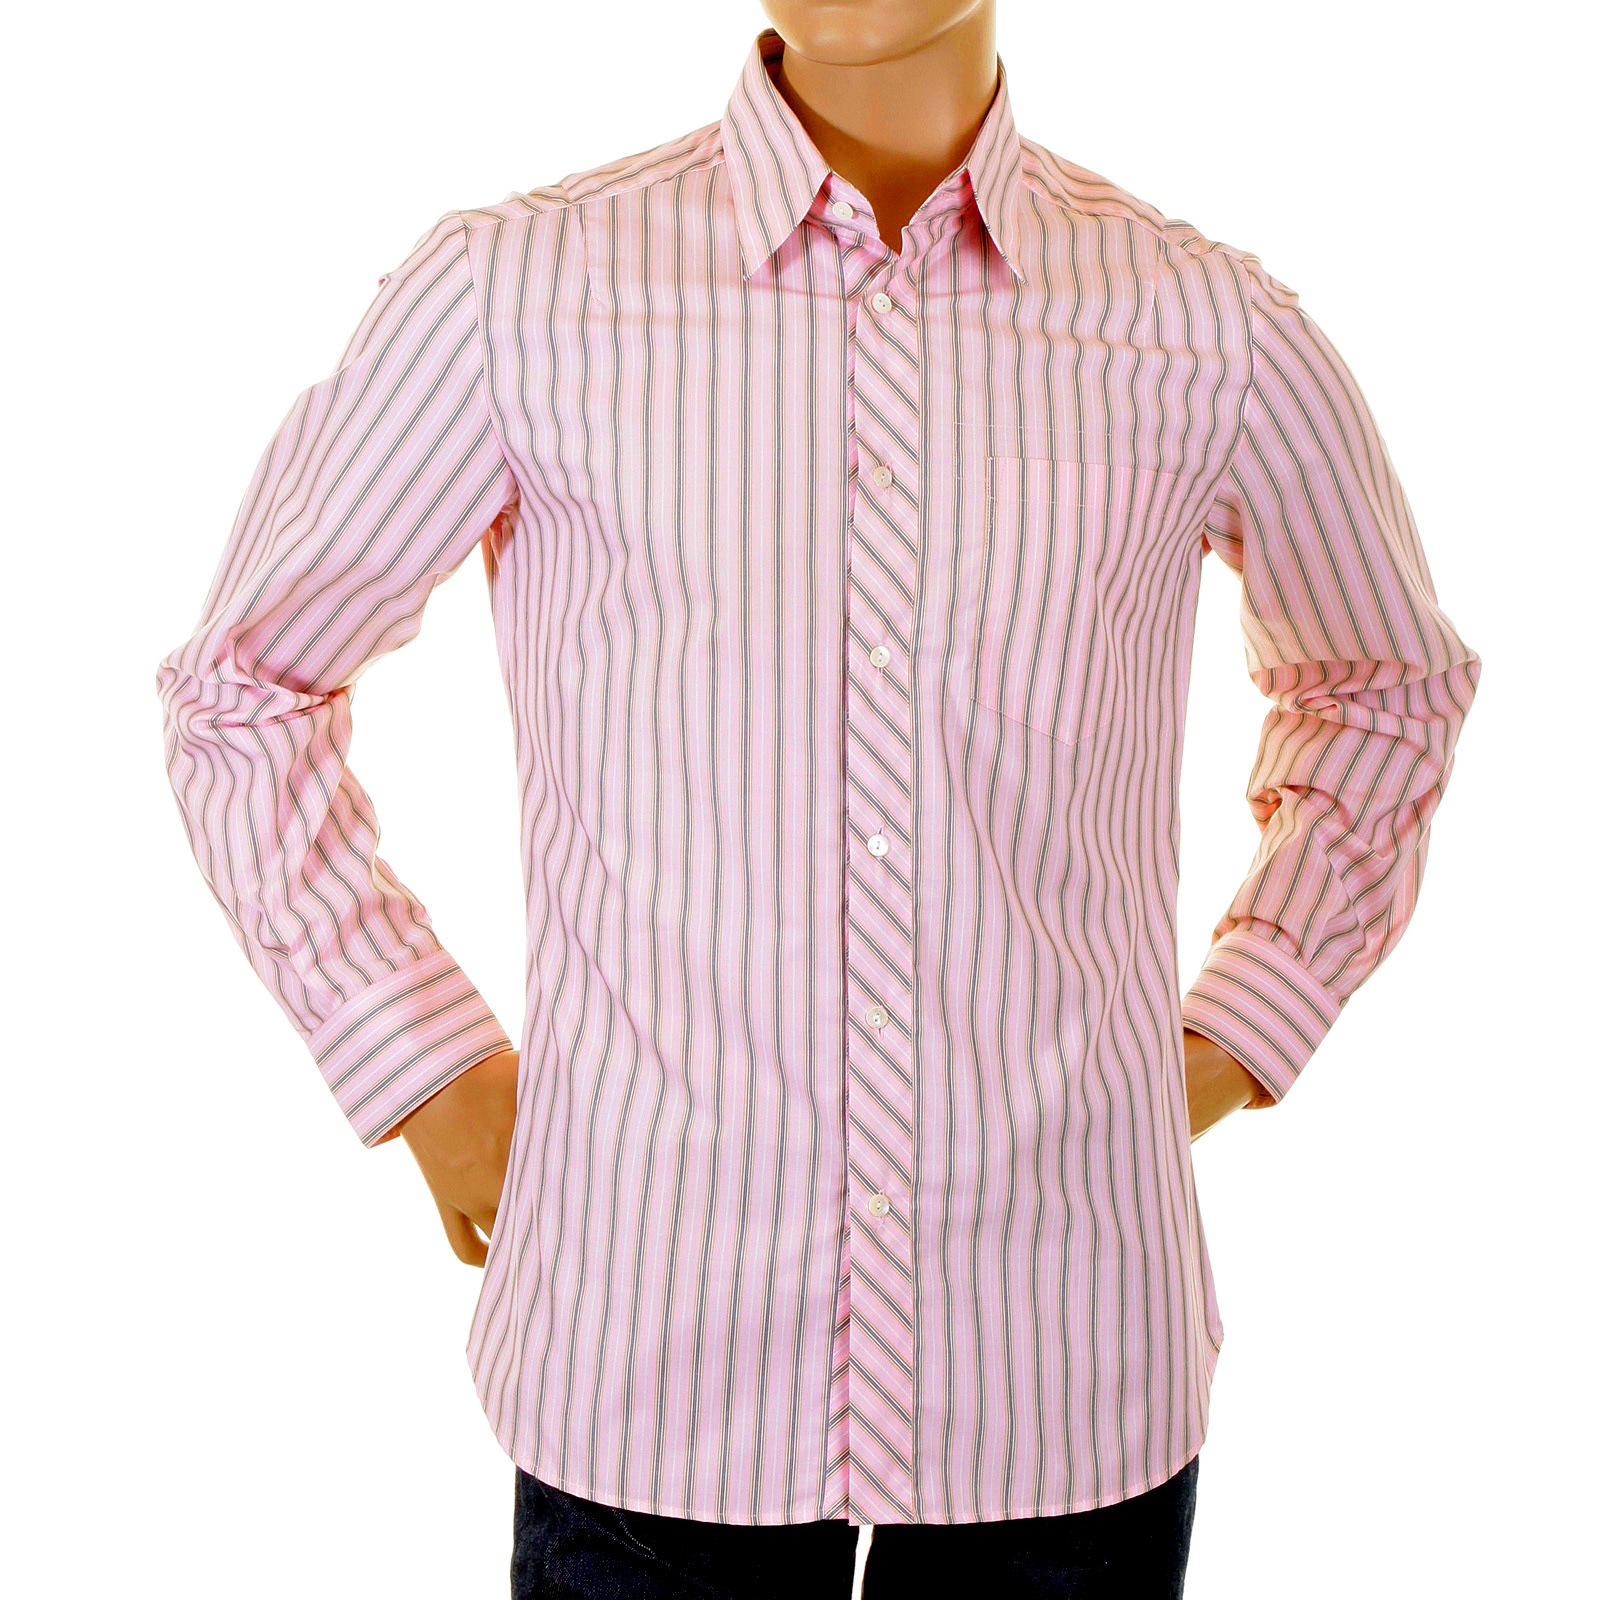 Striped Pink Shirt | Is Shirt